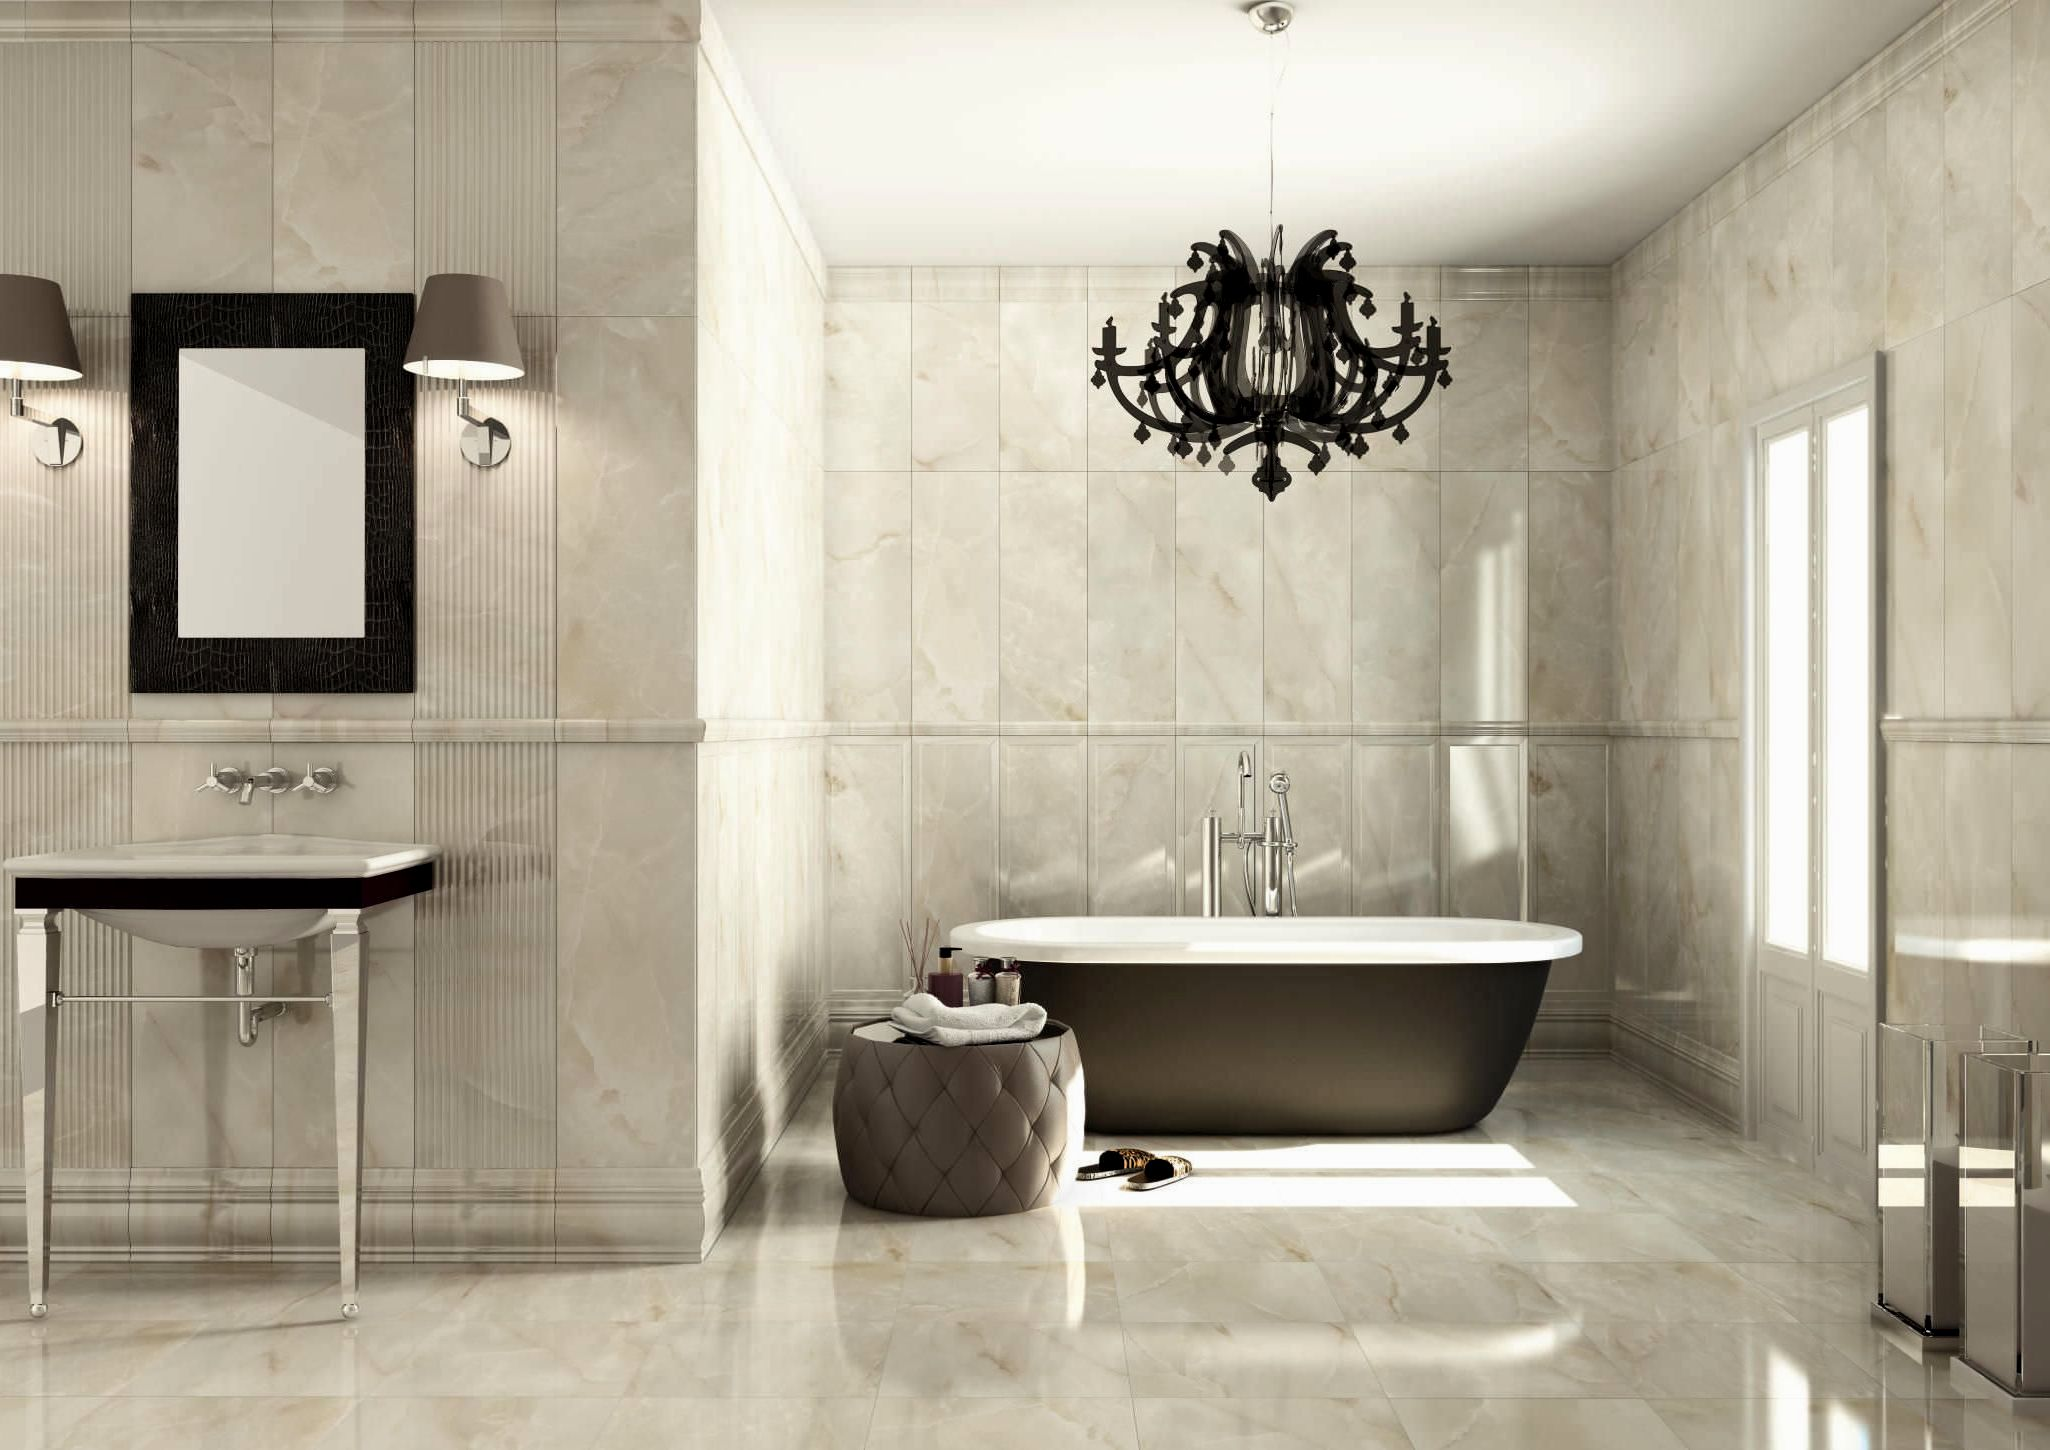 new images of bathroom remodels pattern-Cool Images Of Bathroom Remodels Design